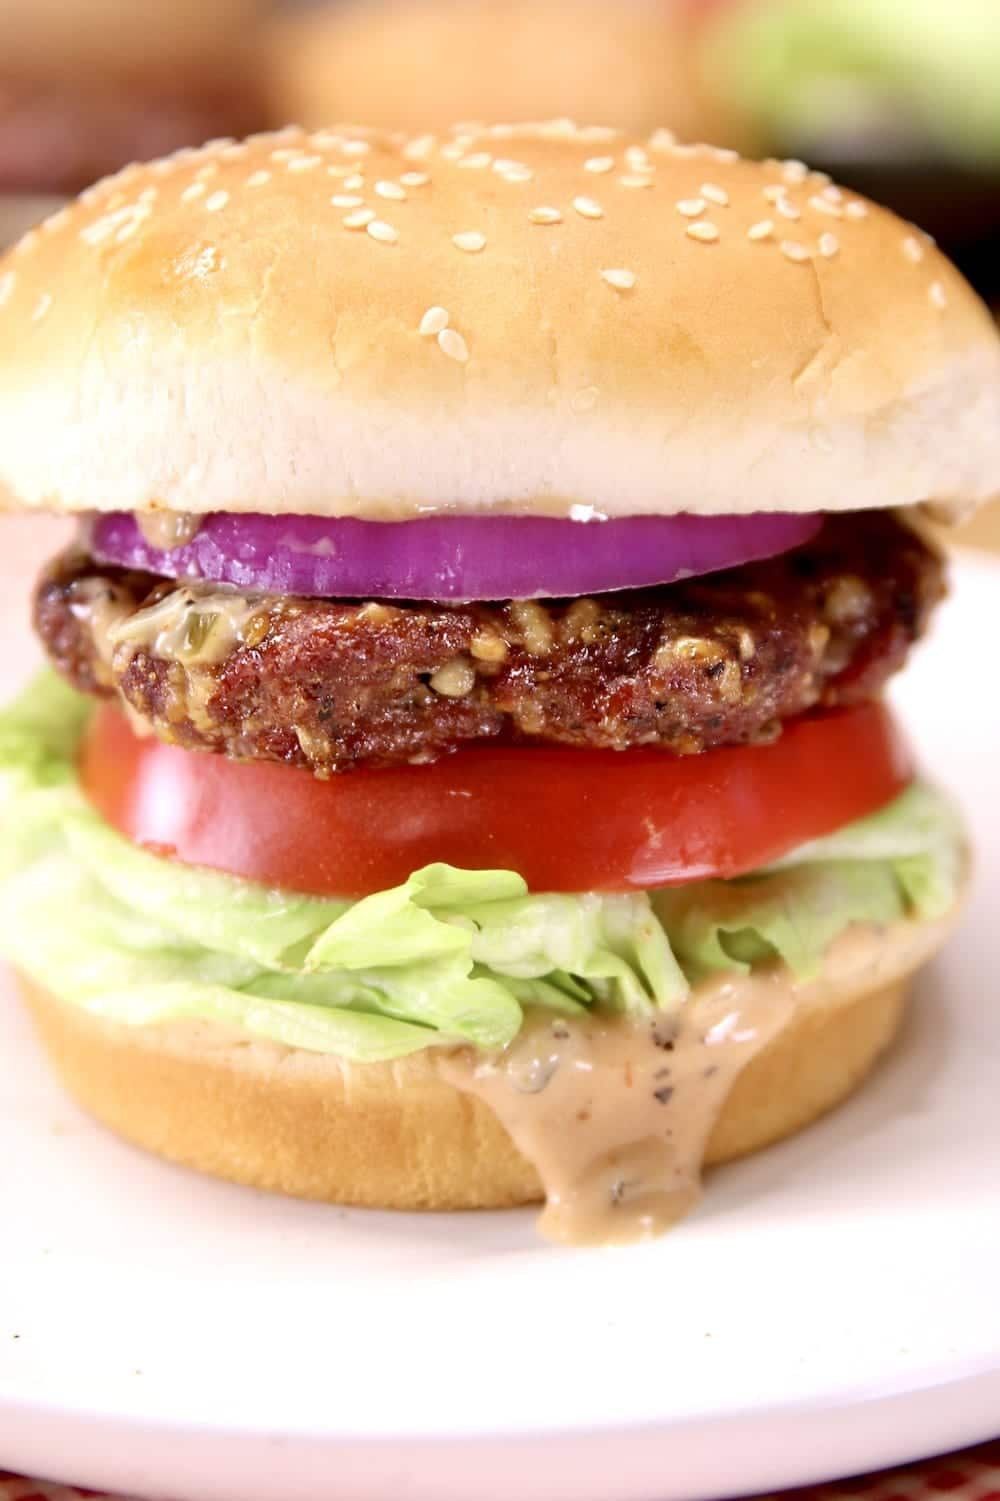 Closeup of grilled mozzarella burger on a bun with burger sauce, lettuce, tomato, red onion